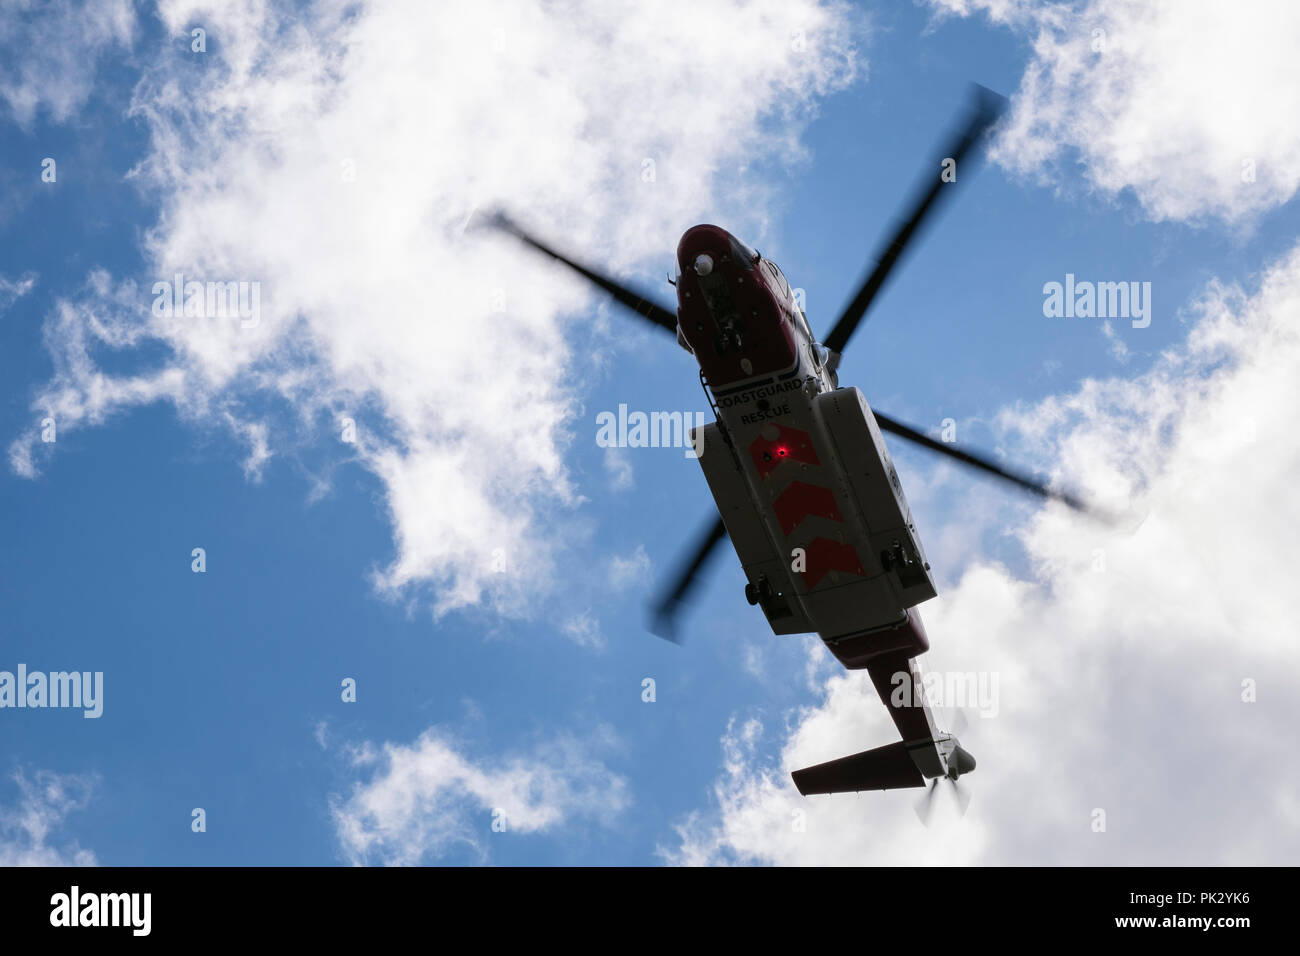 HM Coastguard Bristow search and rescue 936 helicopter hovering overhead during a mountain rescue operation in Snowdonia, Wales, UK, Britain - Stock Image